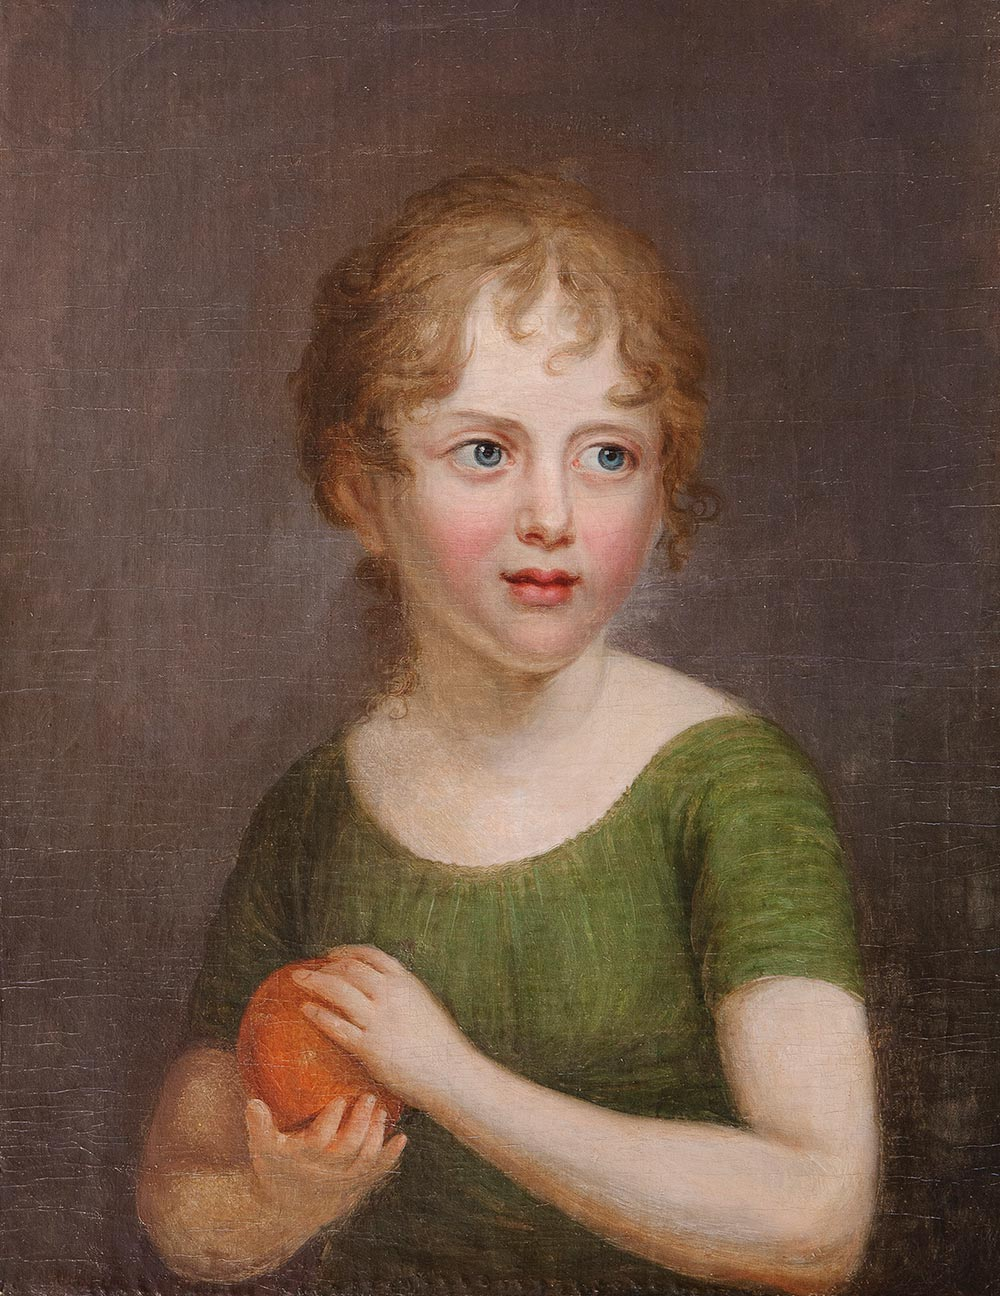 Portrait of a girl with an orange.